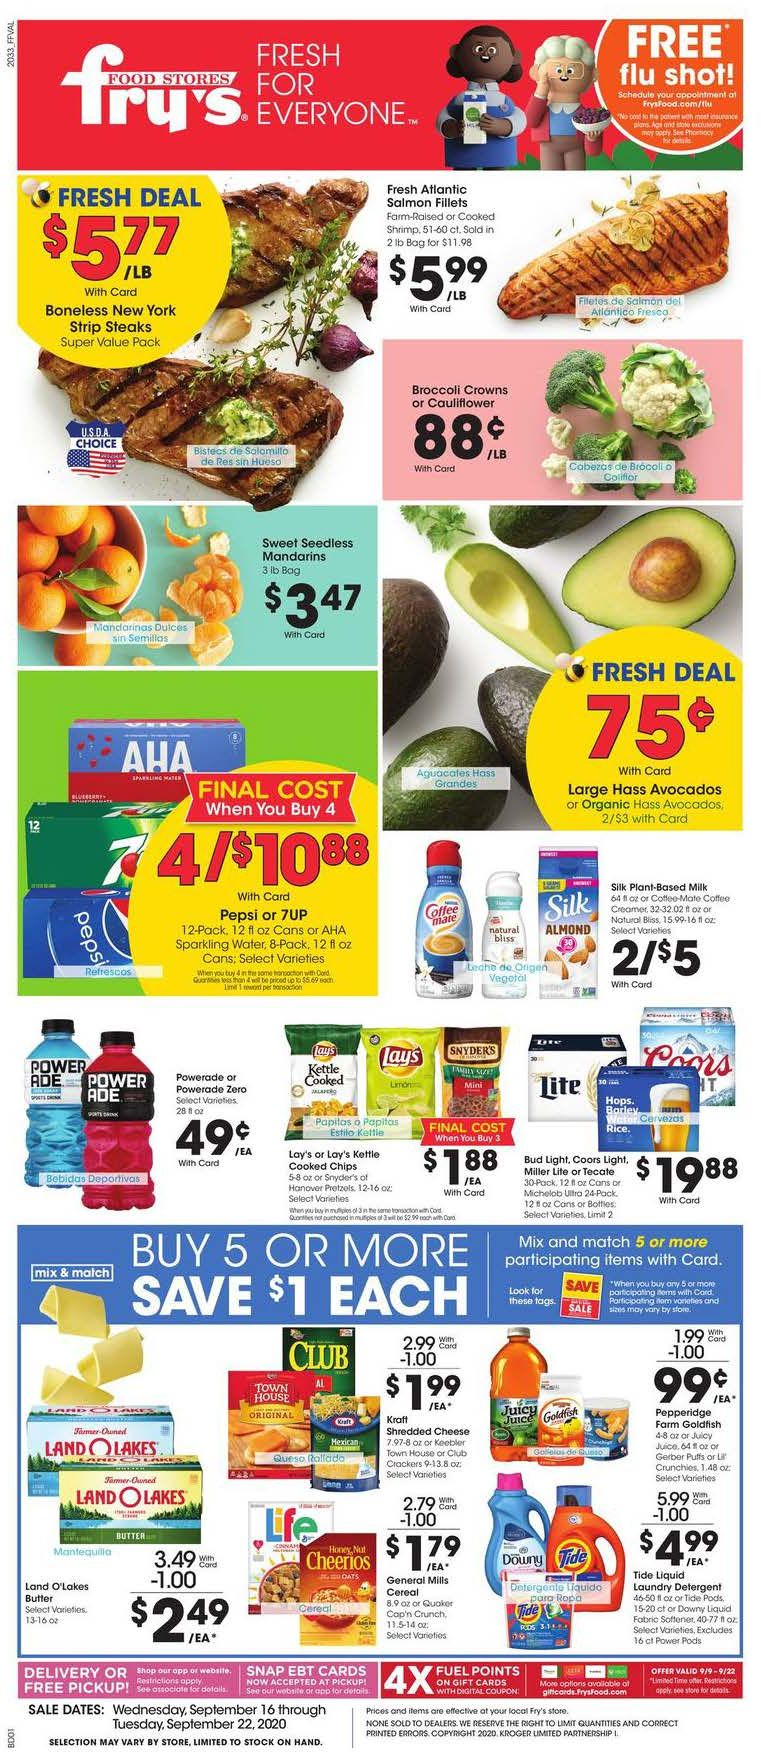 frys weekly ad sep 16 2020